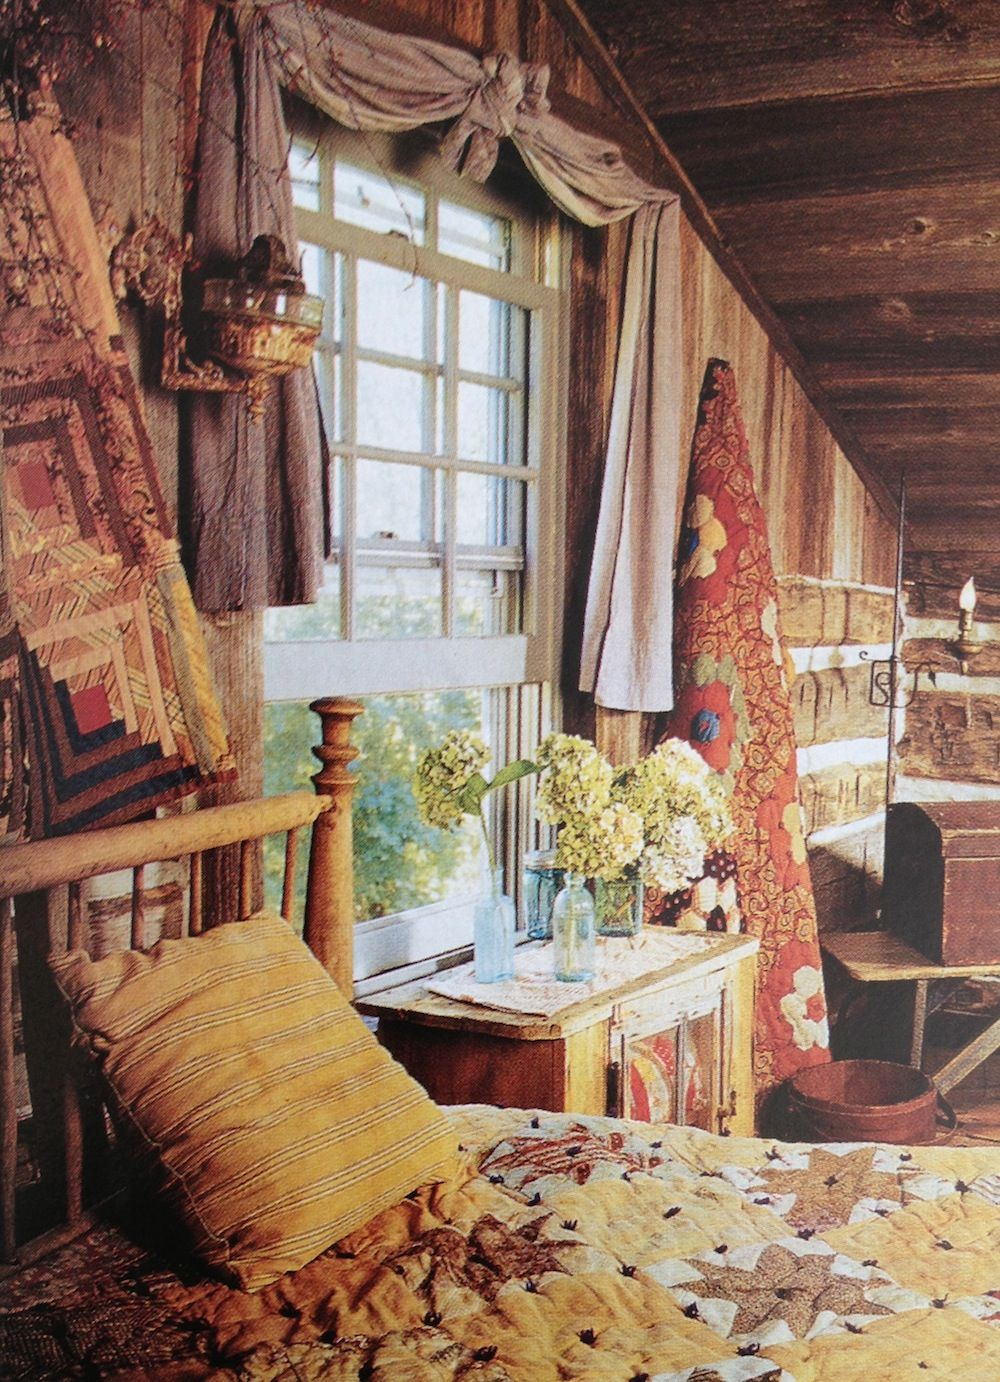 Cabin Bedroom Decor Ideas: Rustic Cabin Bedroom.. Like The Window Curtains.